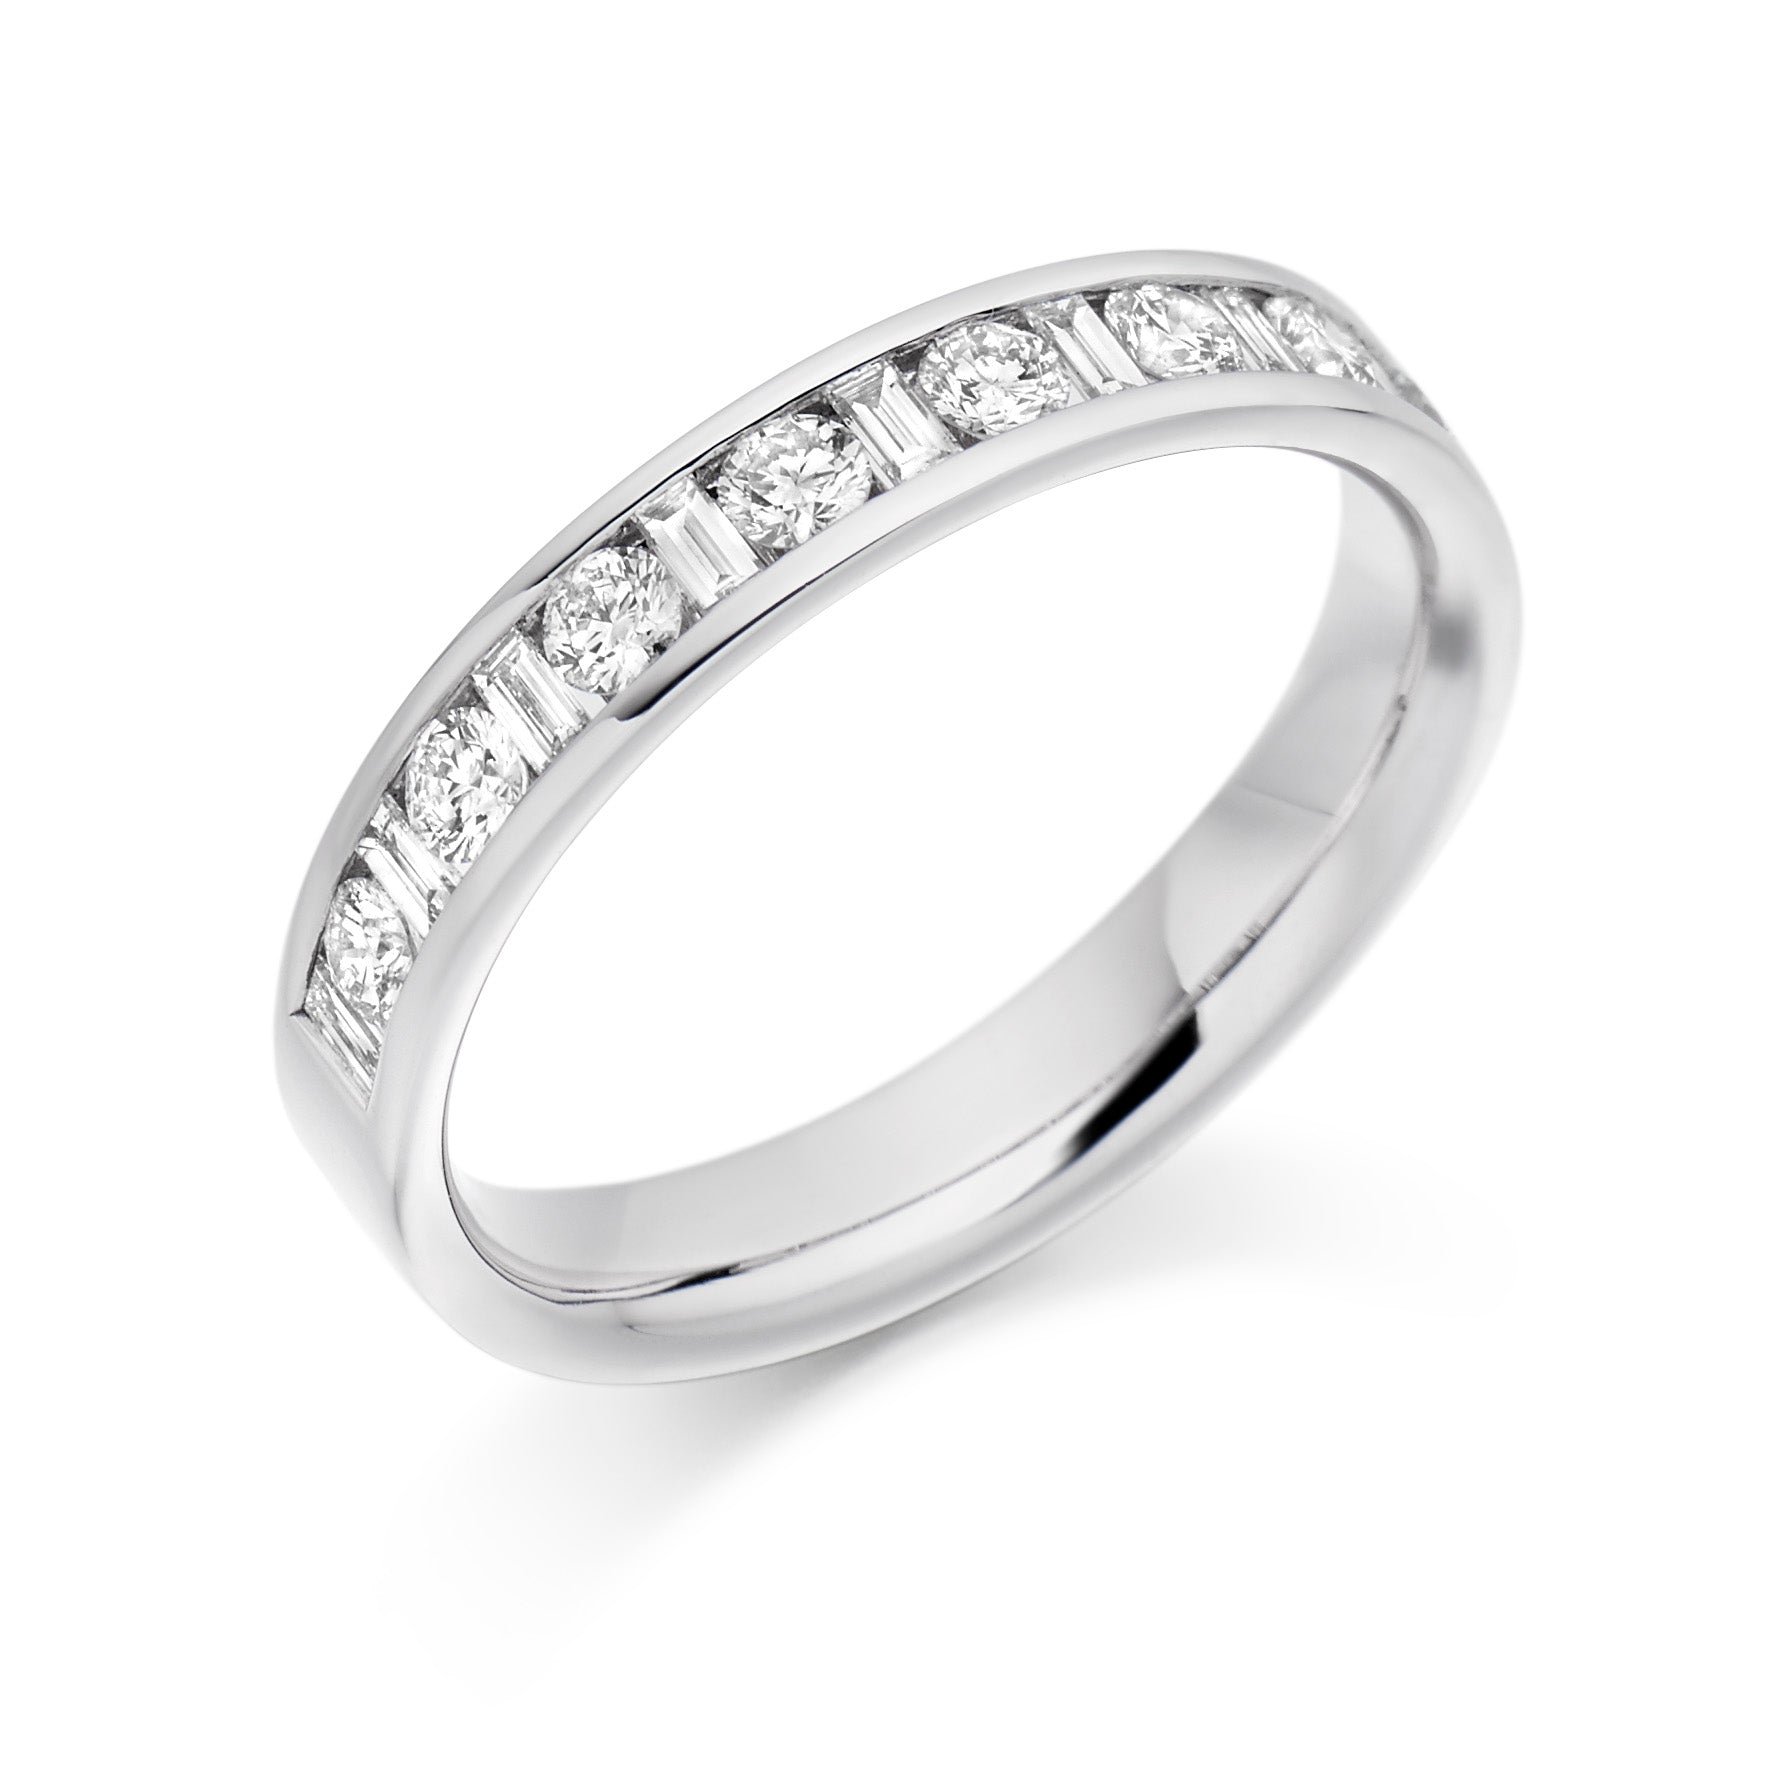 0.50ct Round Brilliant Cut and Baguette Cut Diamonds Wedding Ring - (Home Try-On)